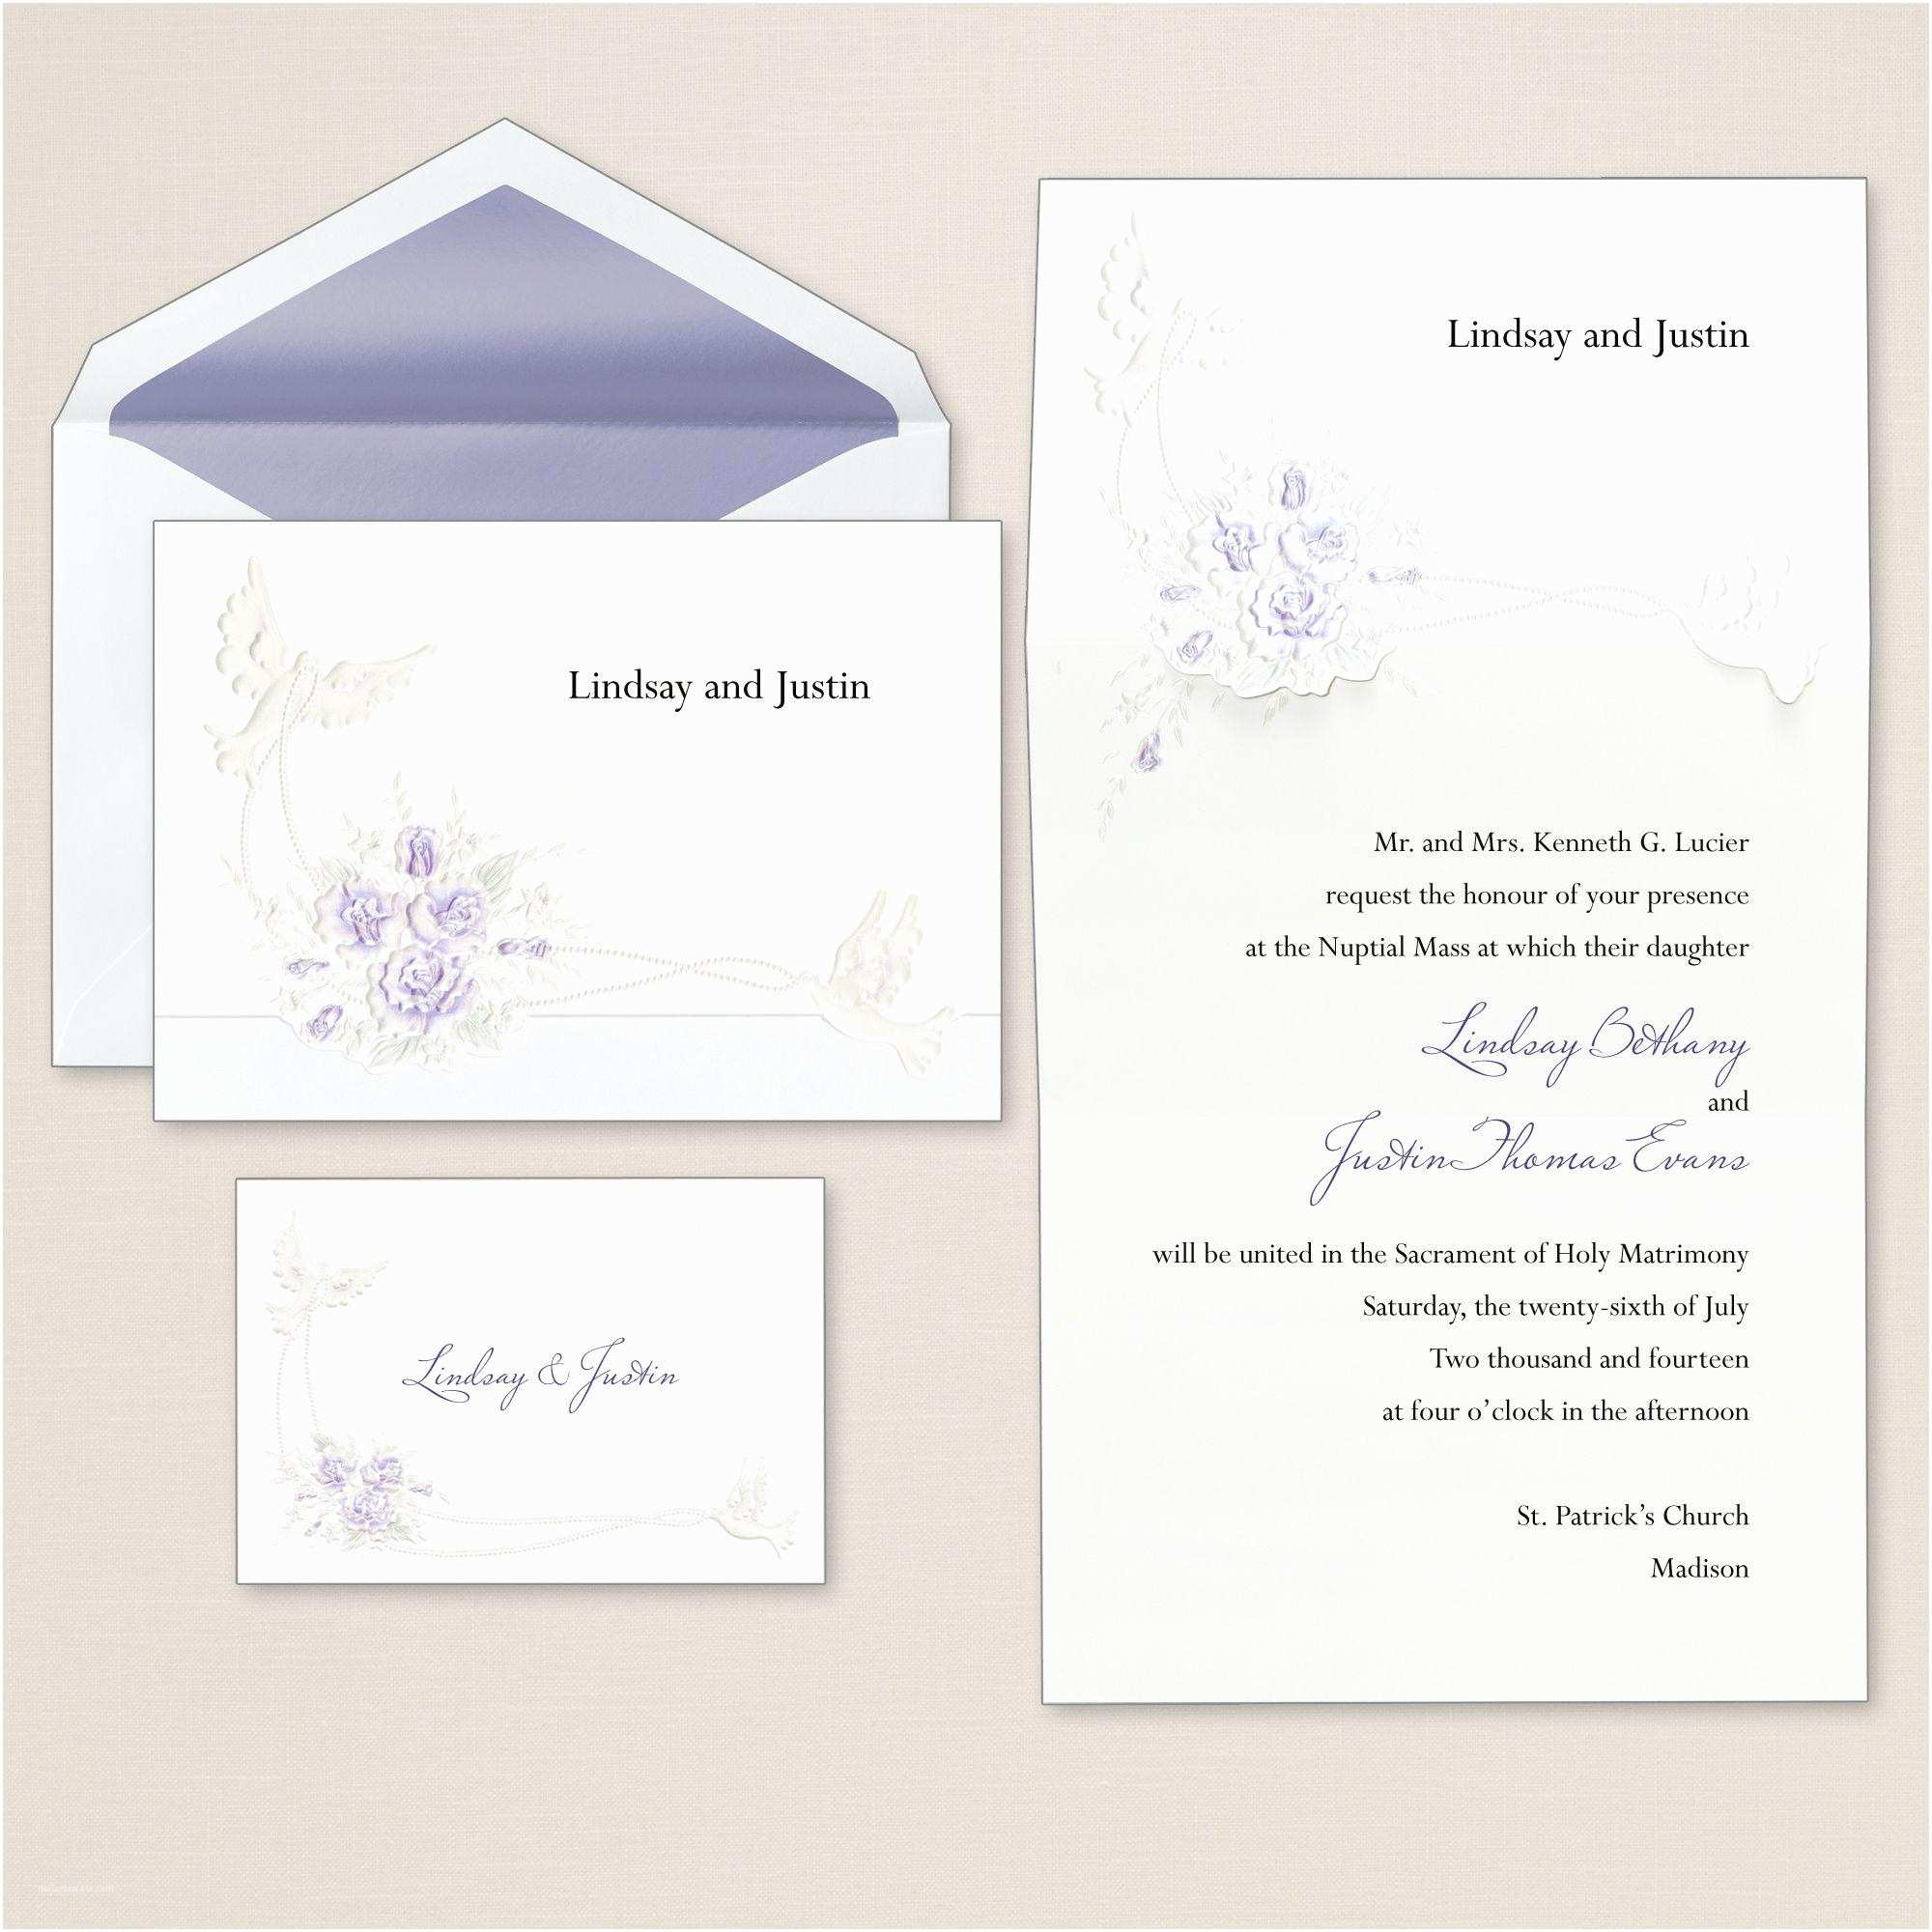 Wedding Invitations With  Cards And Envelopes Wedding Invitation Wedding Invitations And